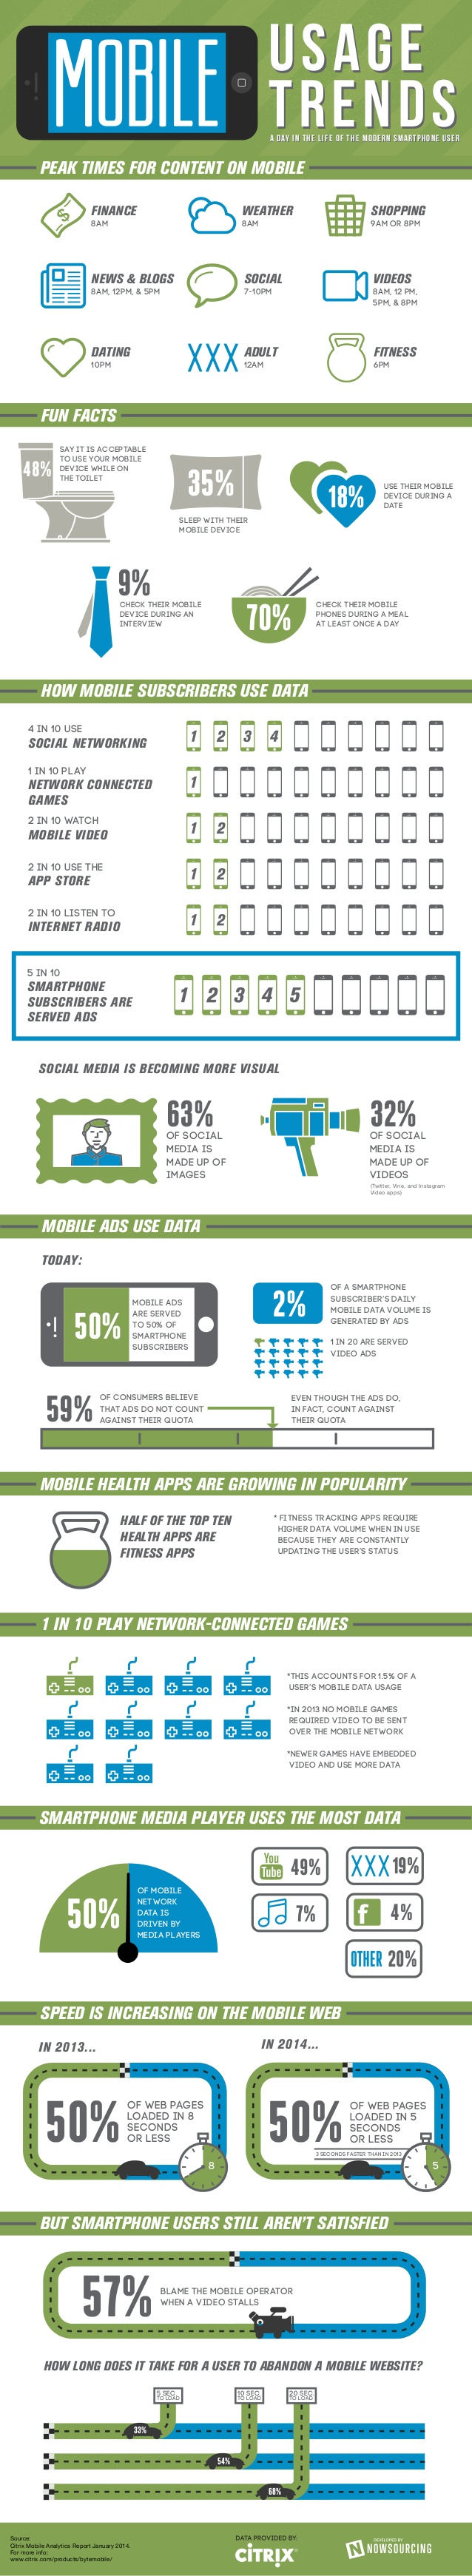 Infographie 111 - Mobile usage trends Citrix